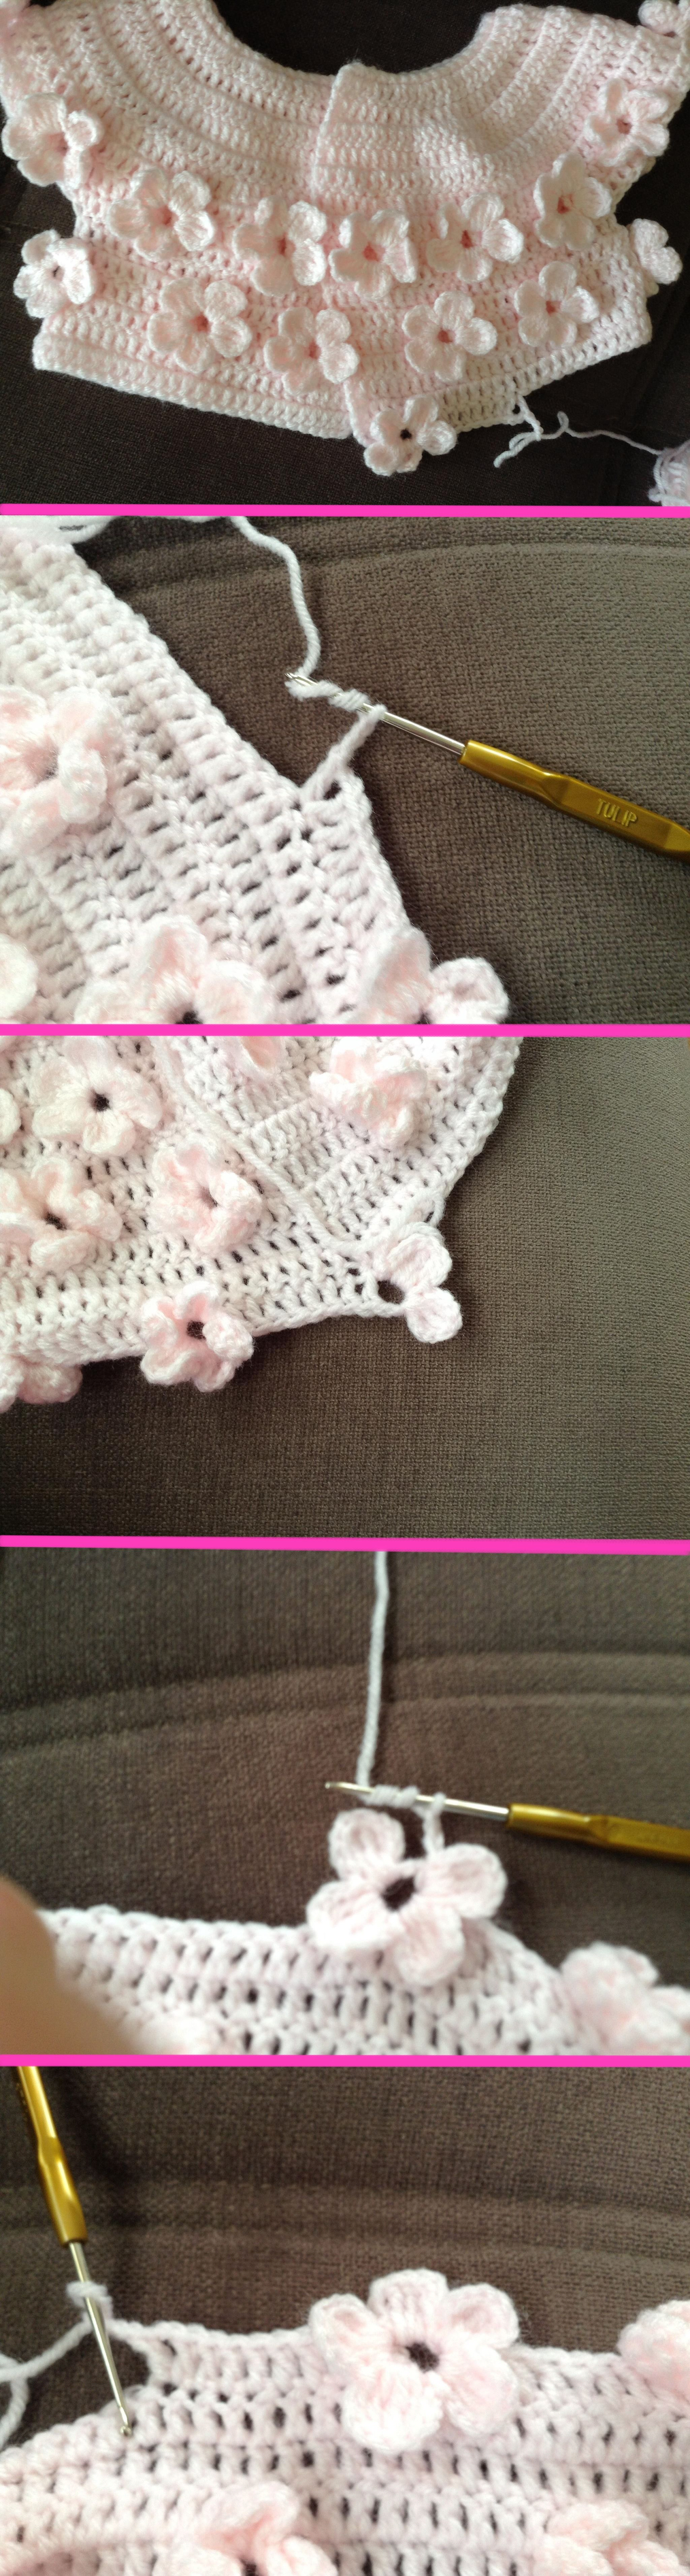 crochet pattern cardigan floral for baby | casacos croche ...